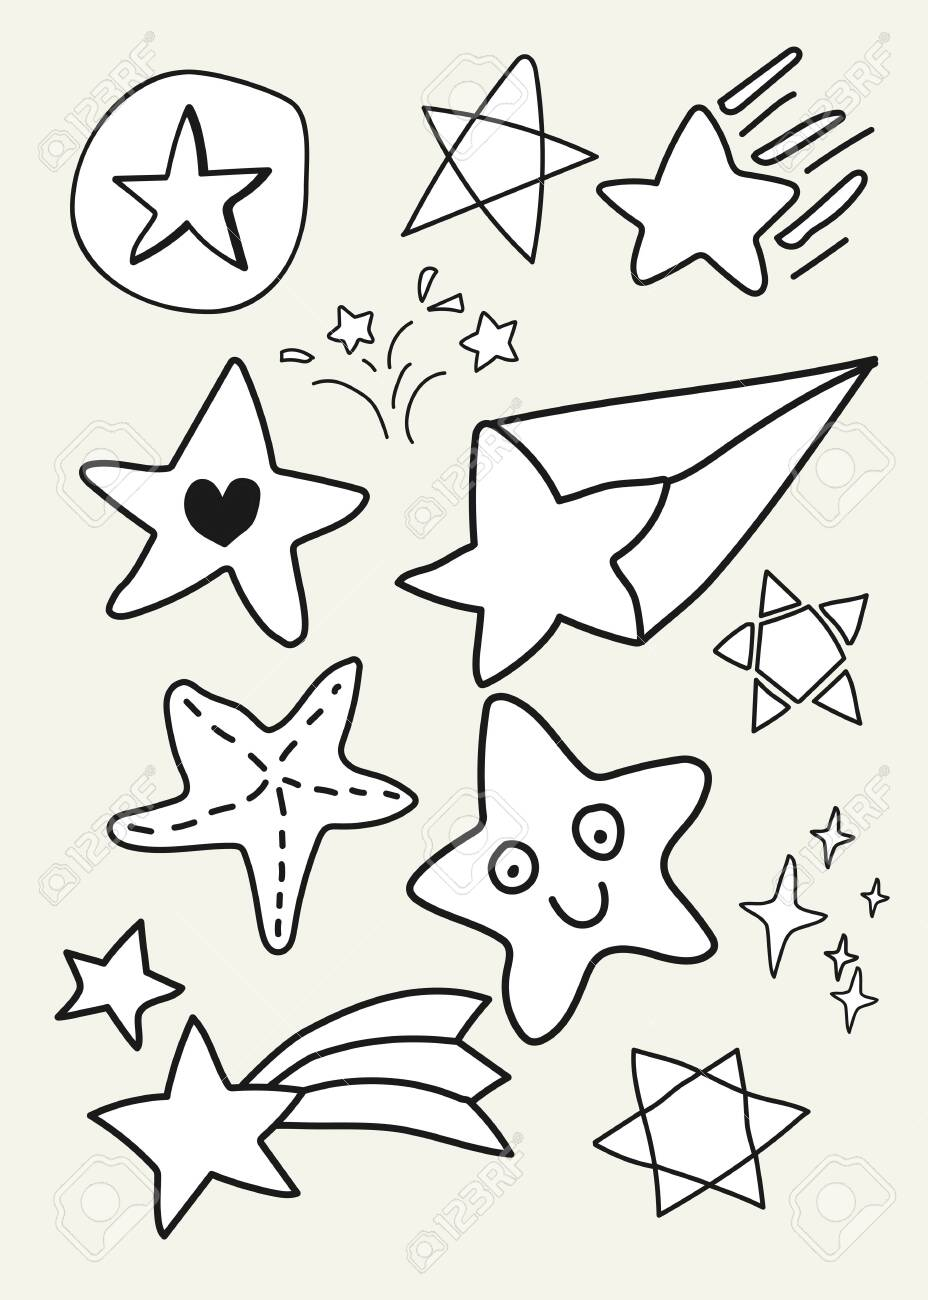 Hand drawn white star vectors collection - 123722336